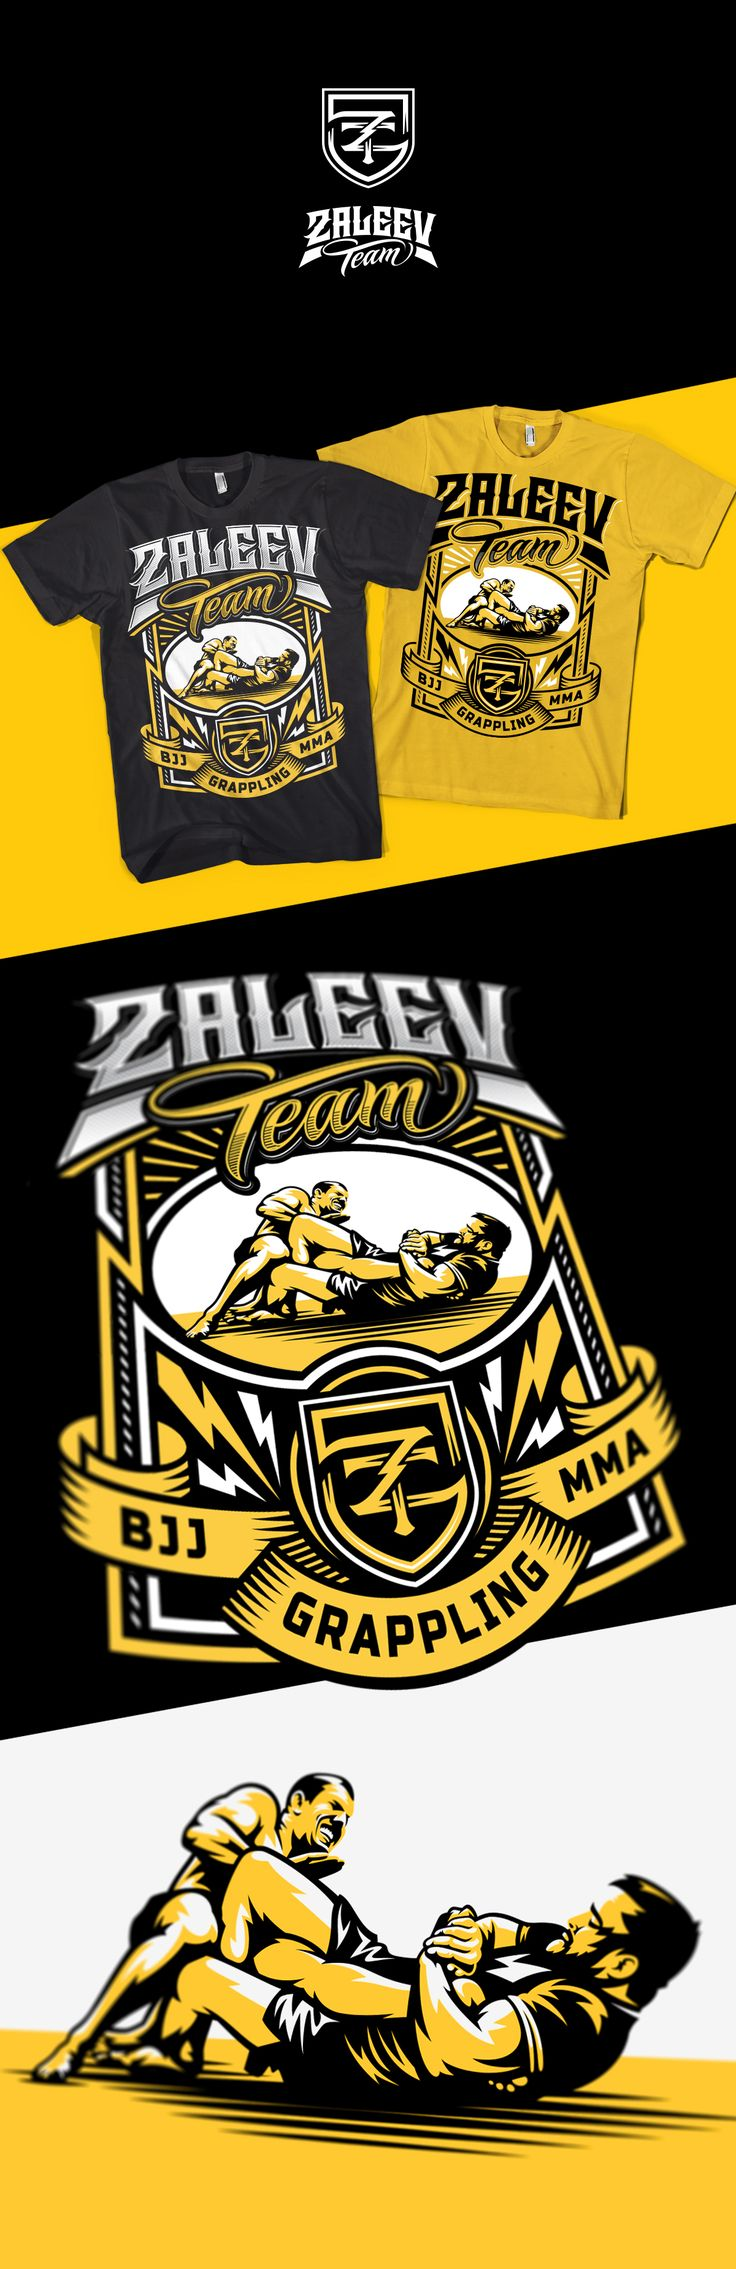 Design t shirt rollerblade - T Shirt Design For Fighting Team Based In Moscow